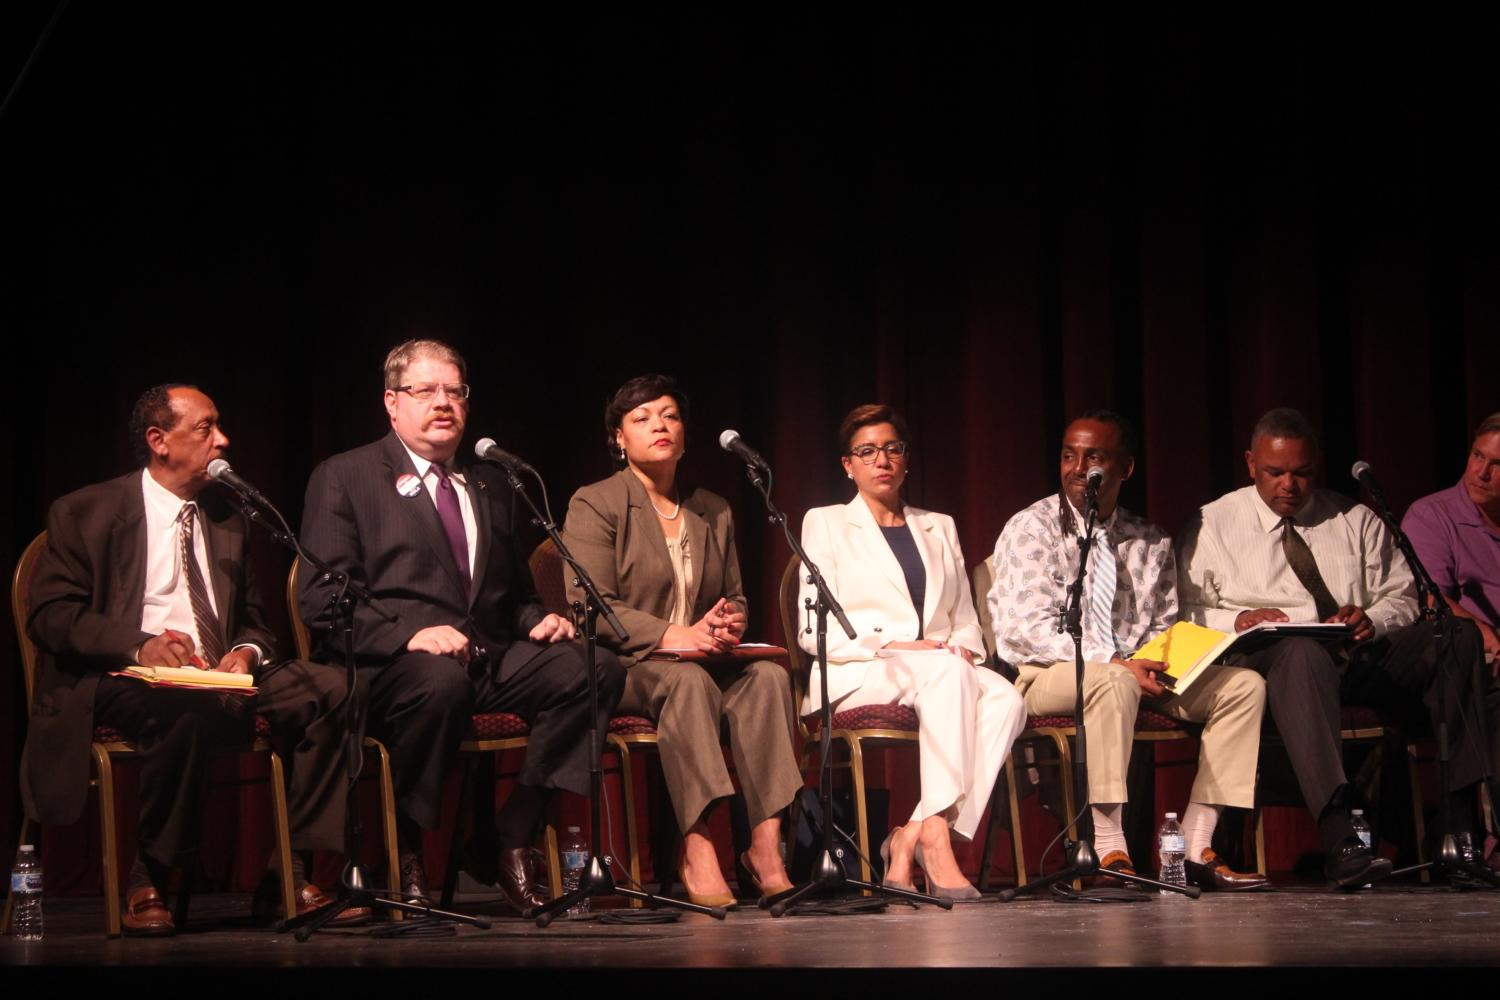 Mayoral candidates discuss current issues with policies facing musicians in New Orleans Photo credit: Caleb Beck